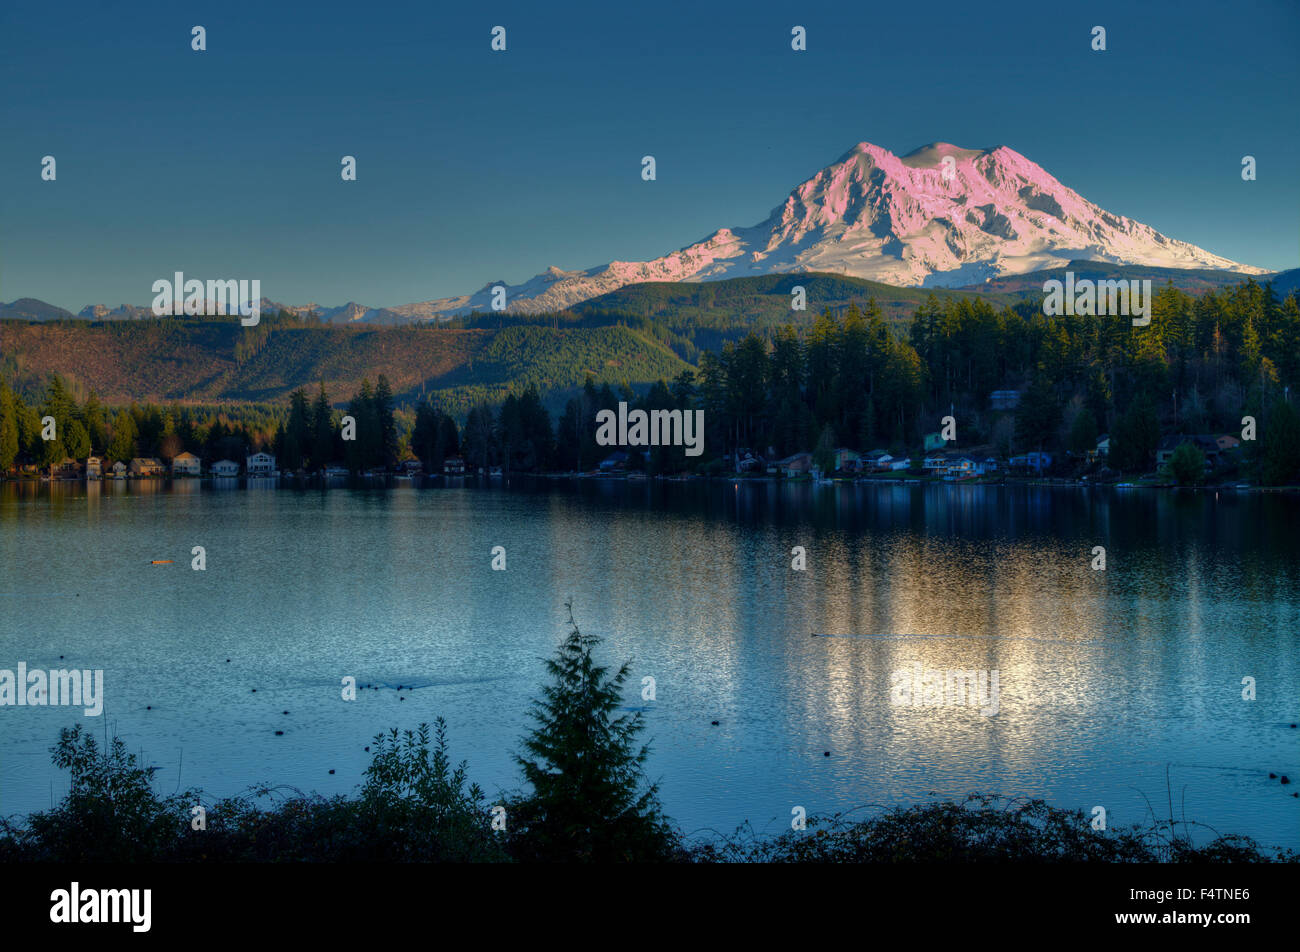 mount shasta, lake, clear lake, California, USA, America, landscape - Stock Image